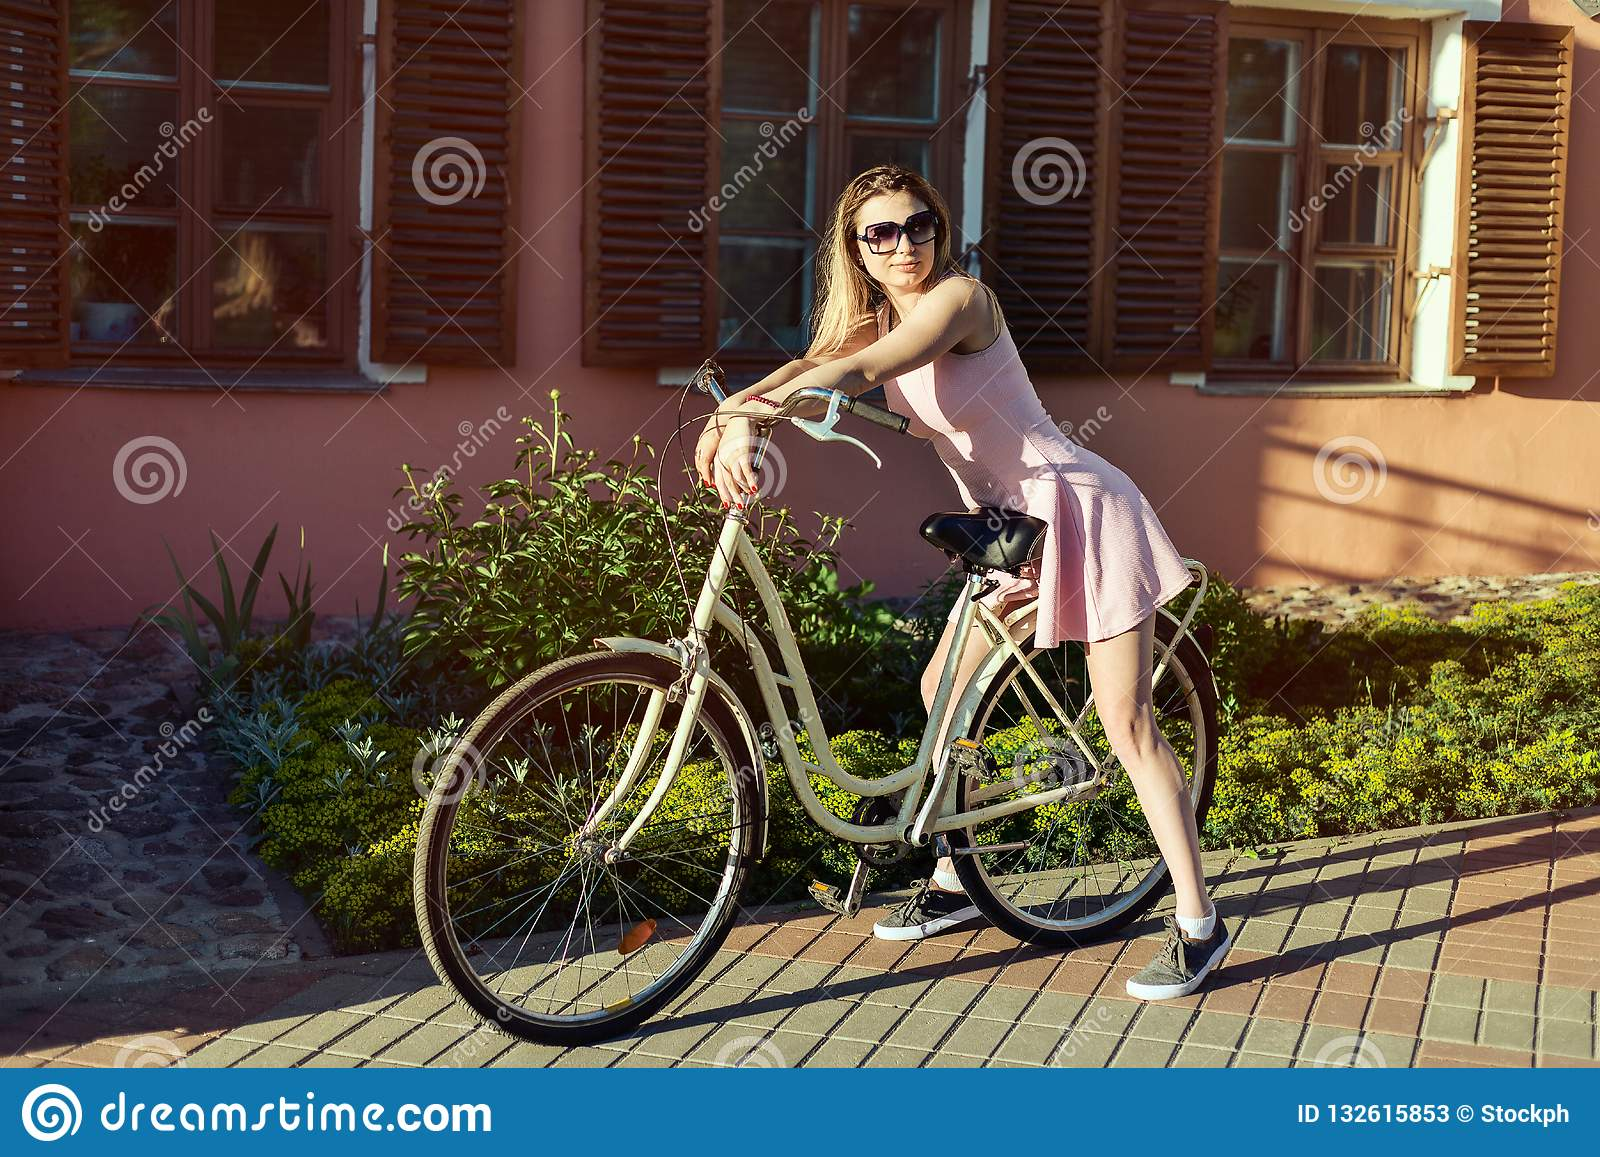 young girl on a bicycle wearing glasses and a pink dress po